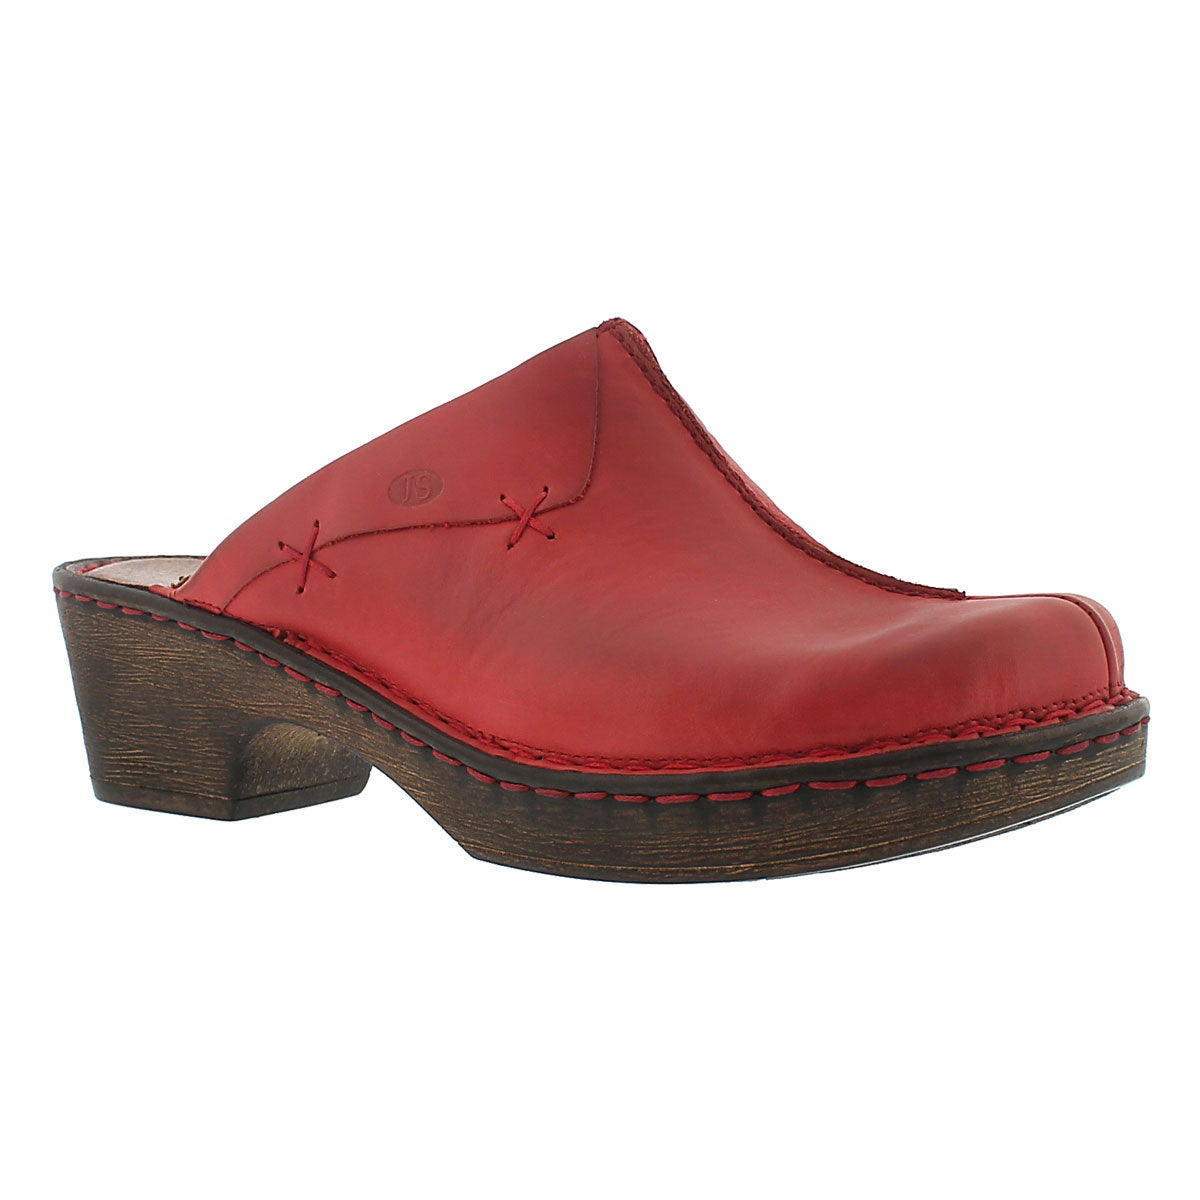 Women's REBECCA 13 red casual clogs